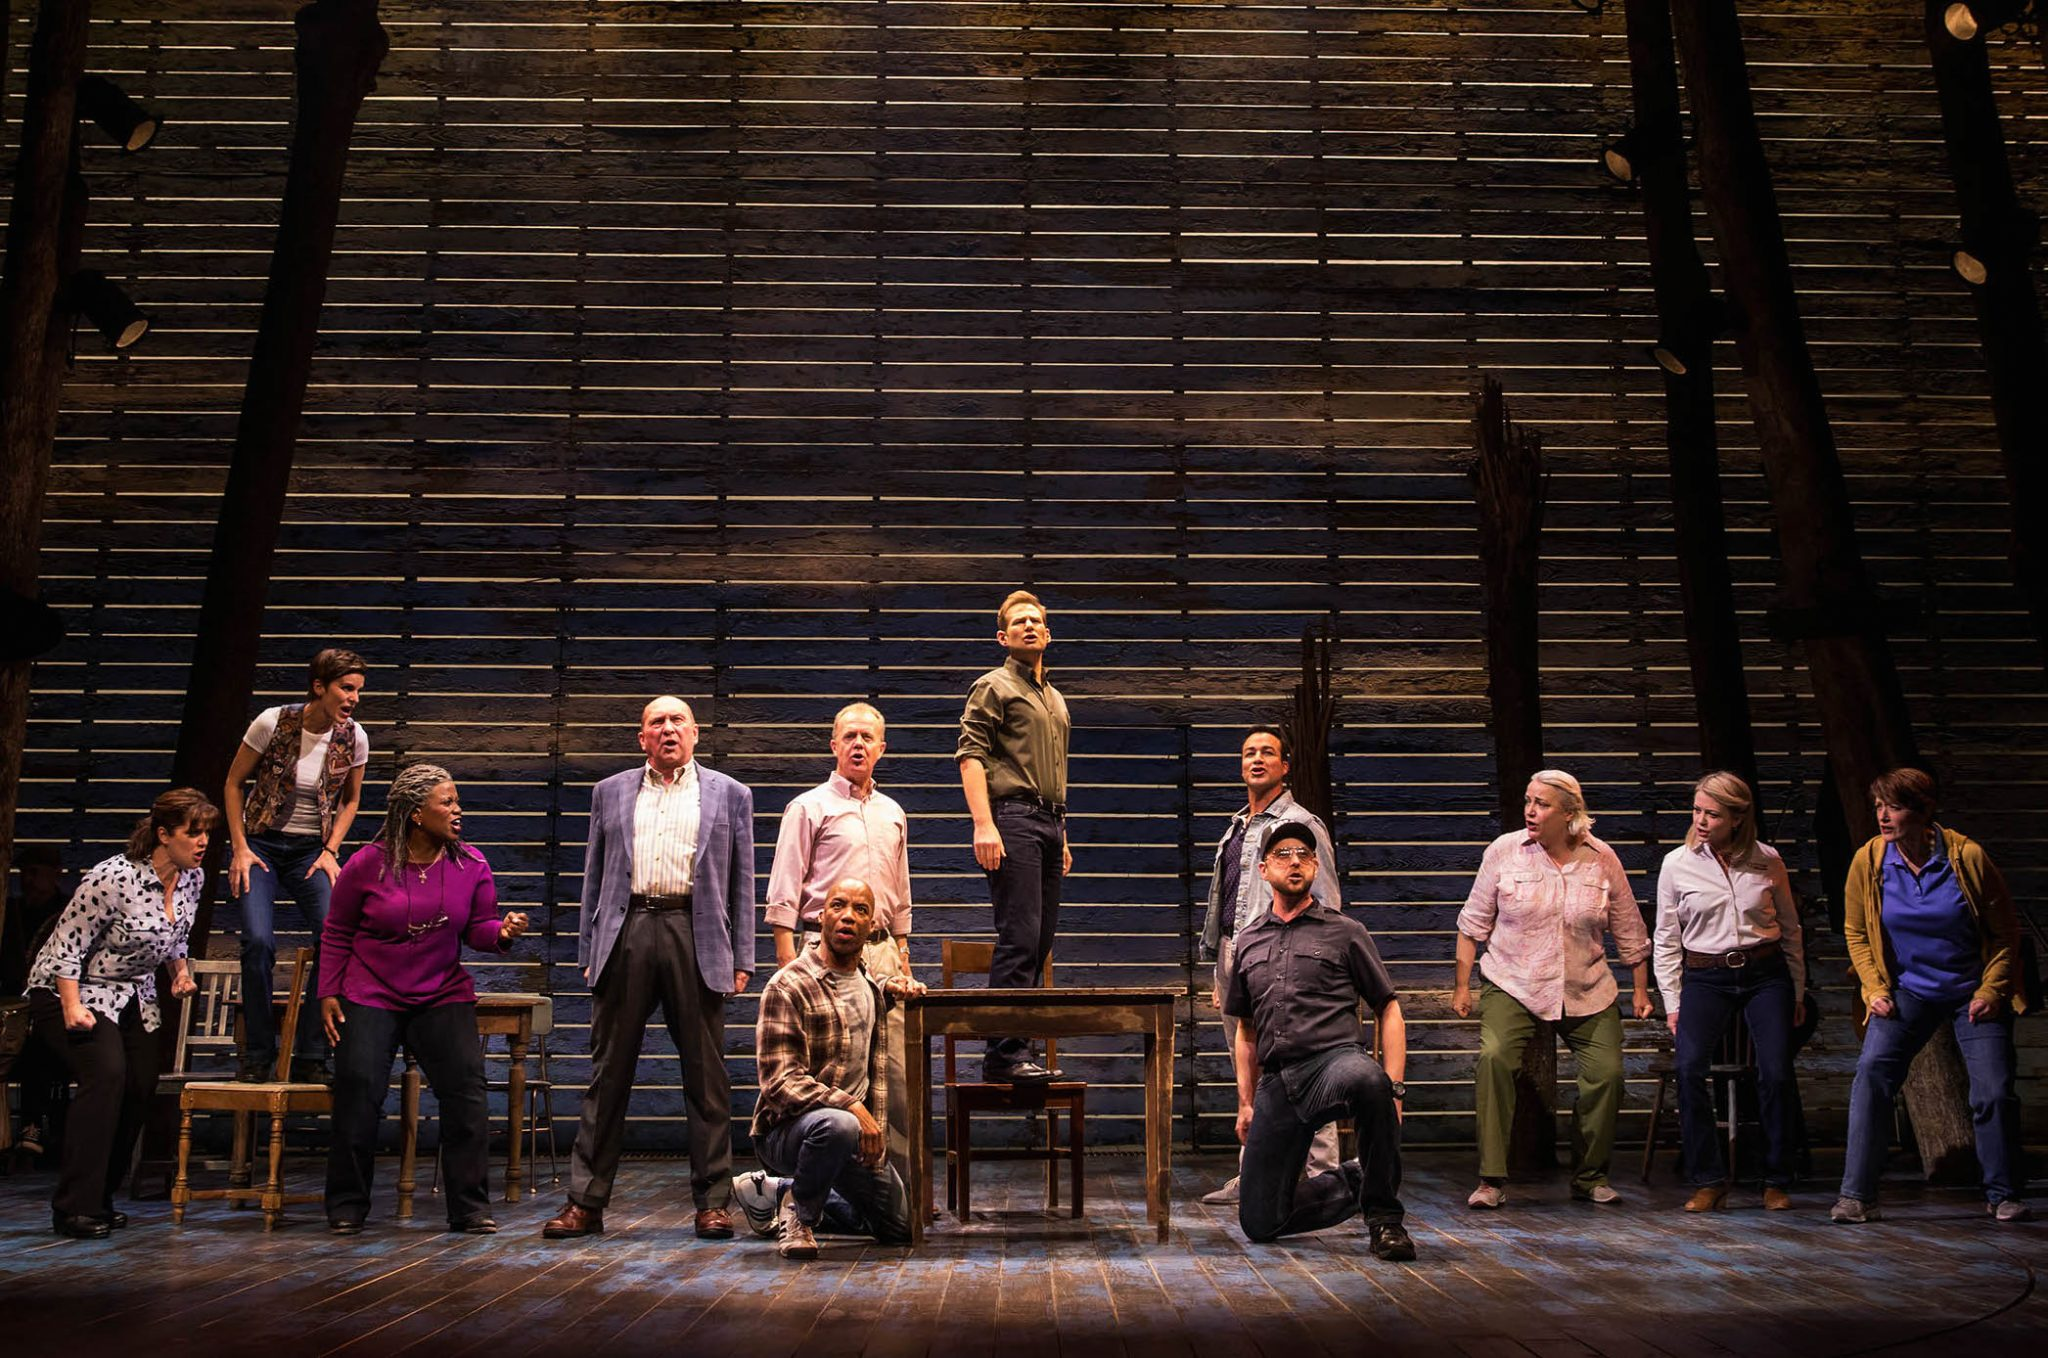 The cast of COME FROM AWAY musical